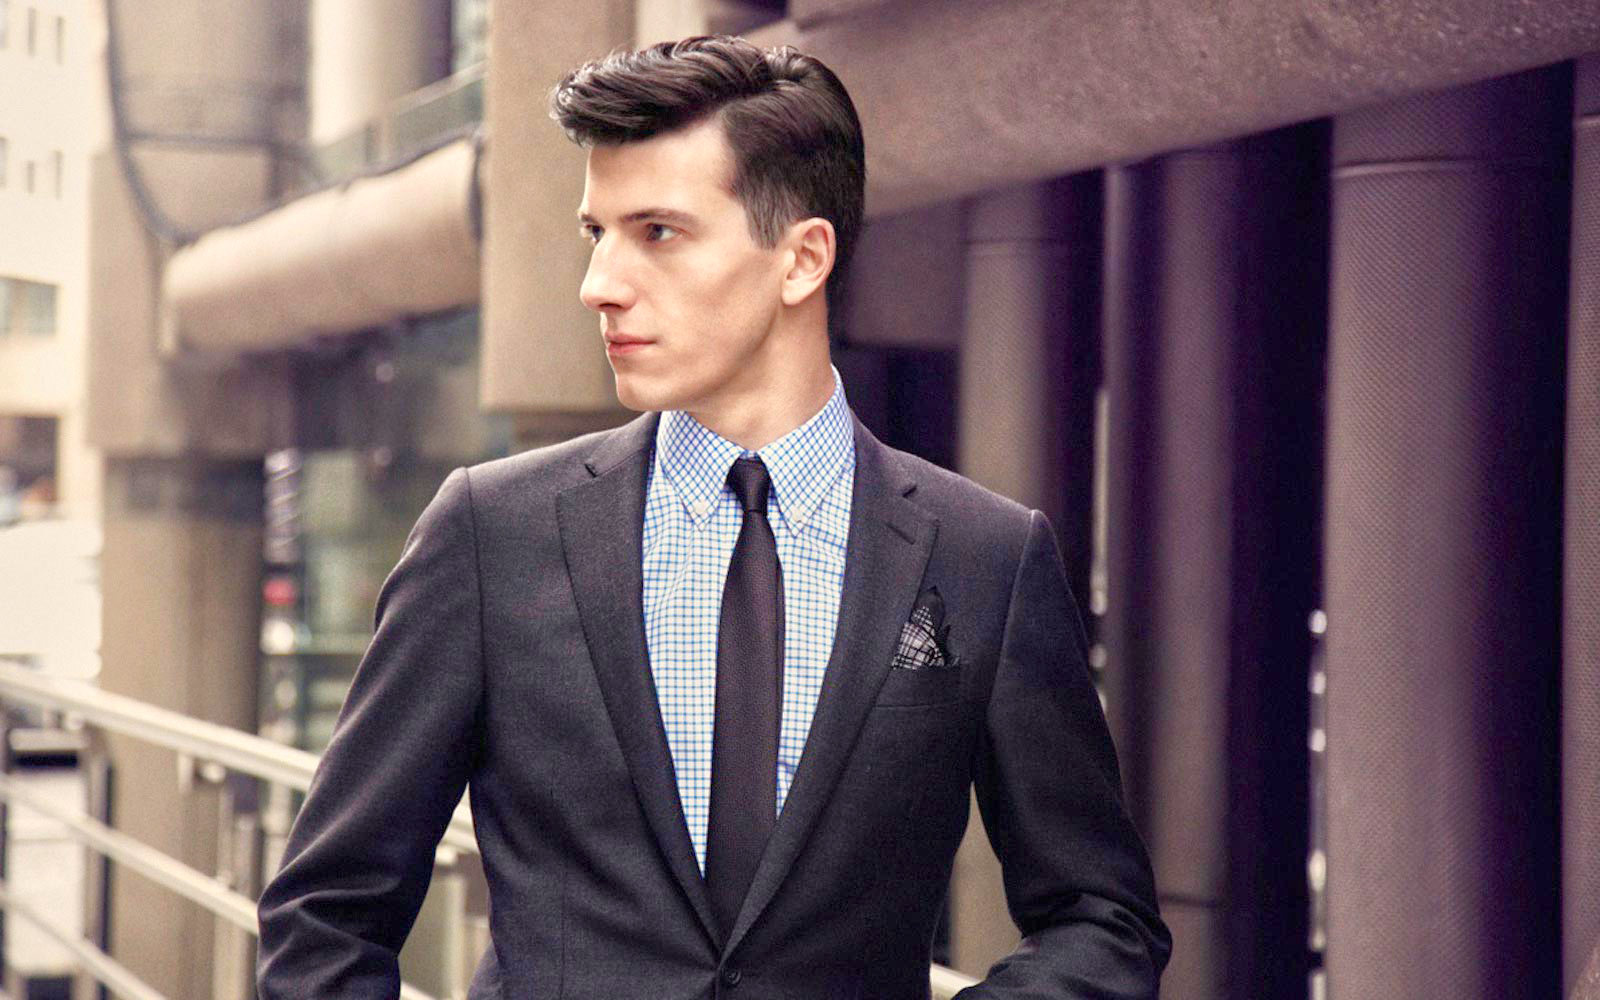 dress for the event: where to wear a suit